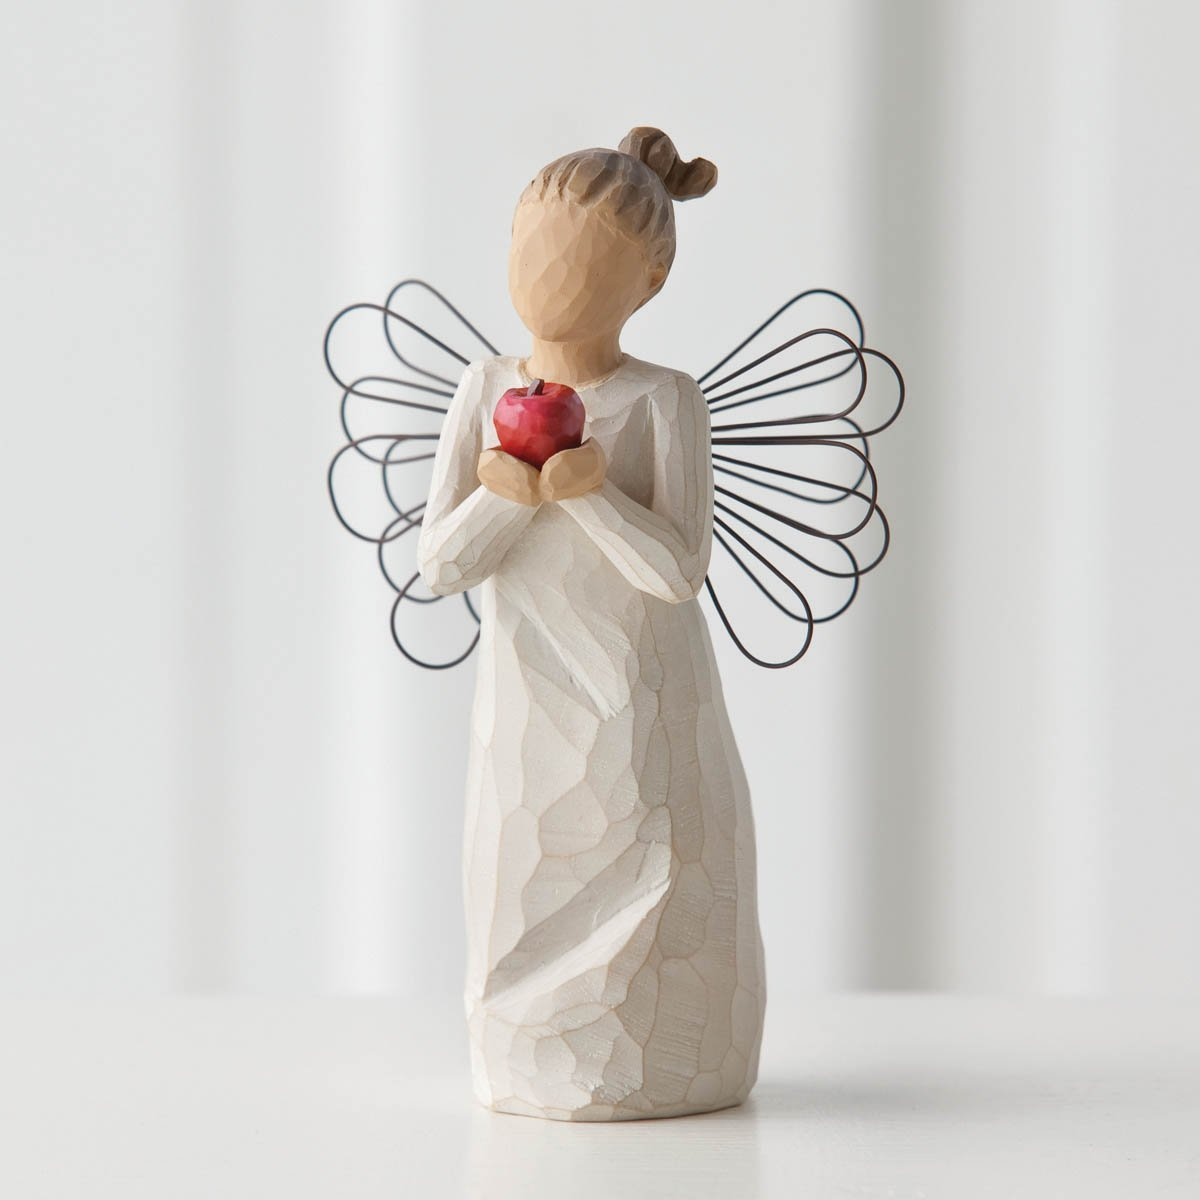 Willow Tree 'You Are The Best' Figurine